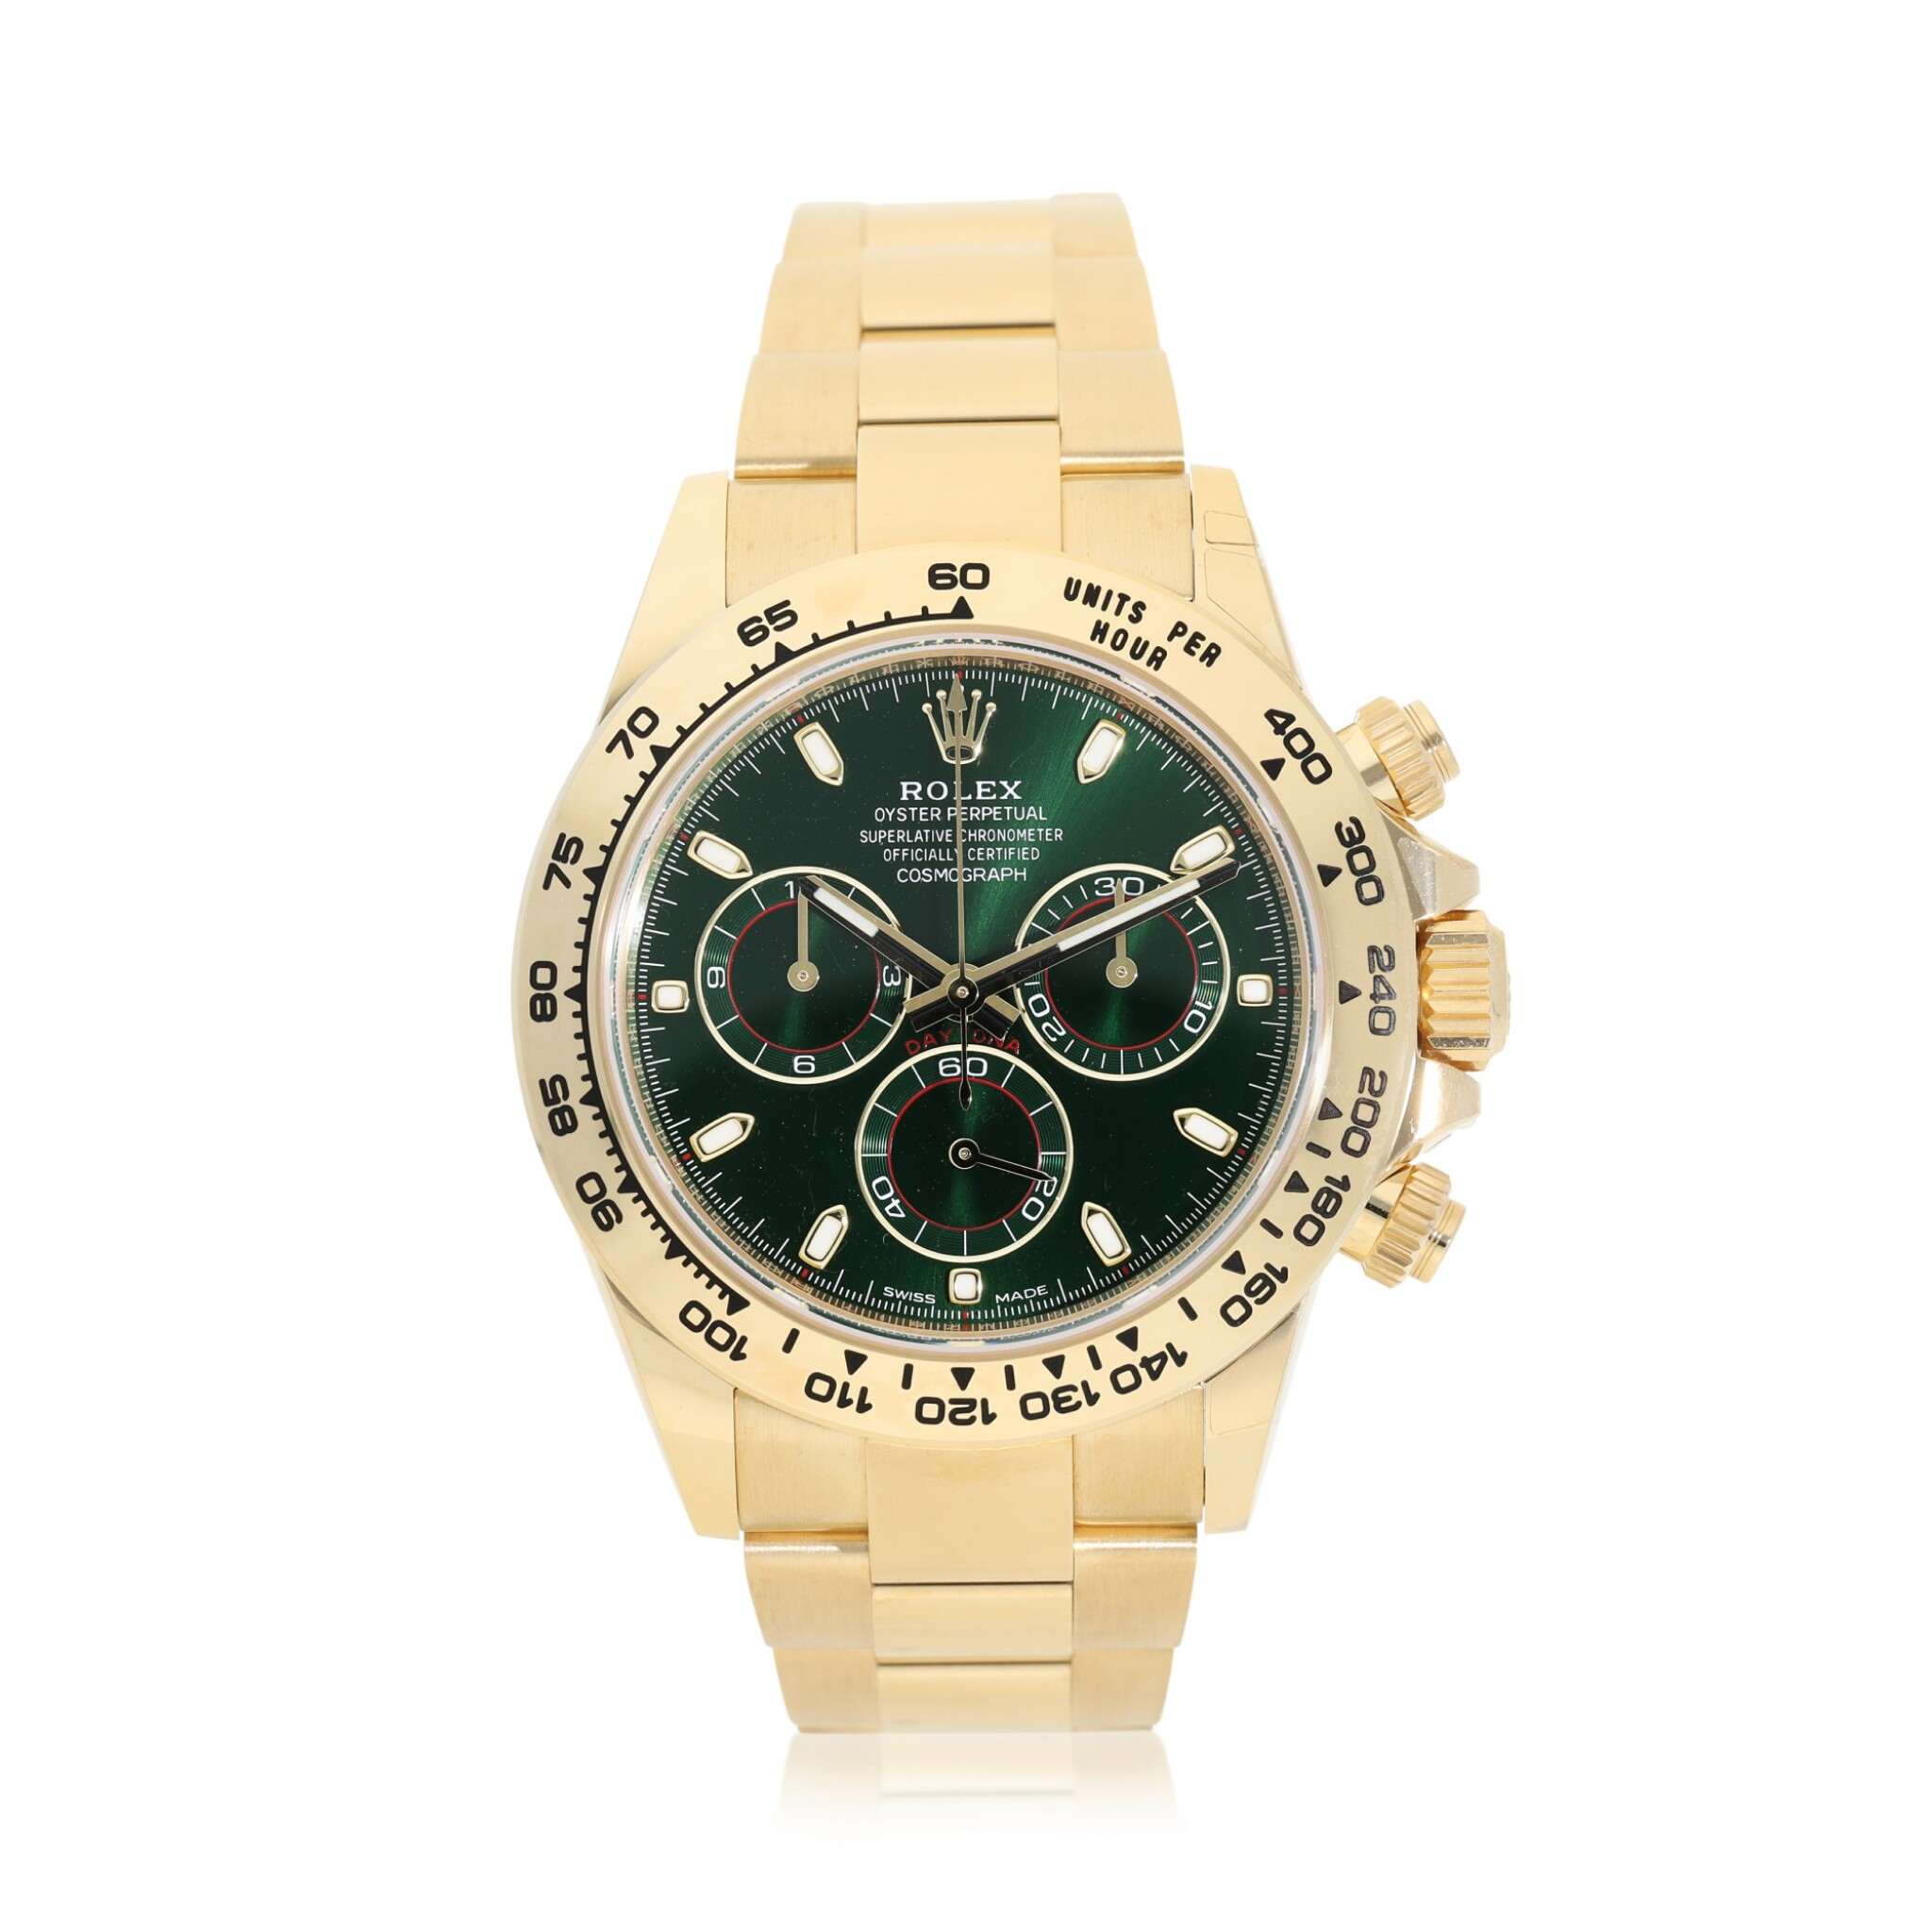 View full screen - View 1 of Lot 15. ROLEX | REFERENCE 116508 DAYTONA   A YELLOW GOLD AUTOMATIC CHRONOGRAPH WRISTWATCH WITH BRACELET, CIRCA 2019.